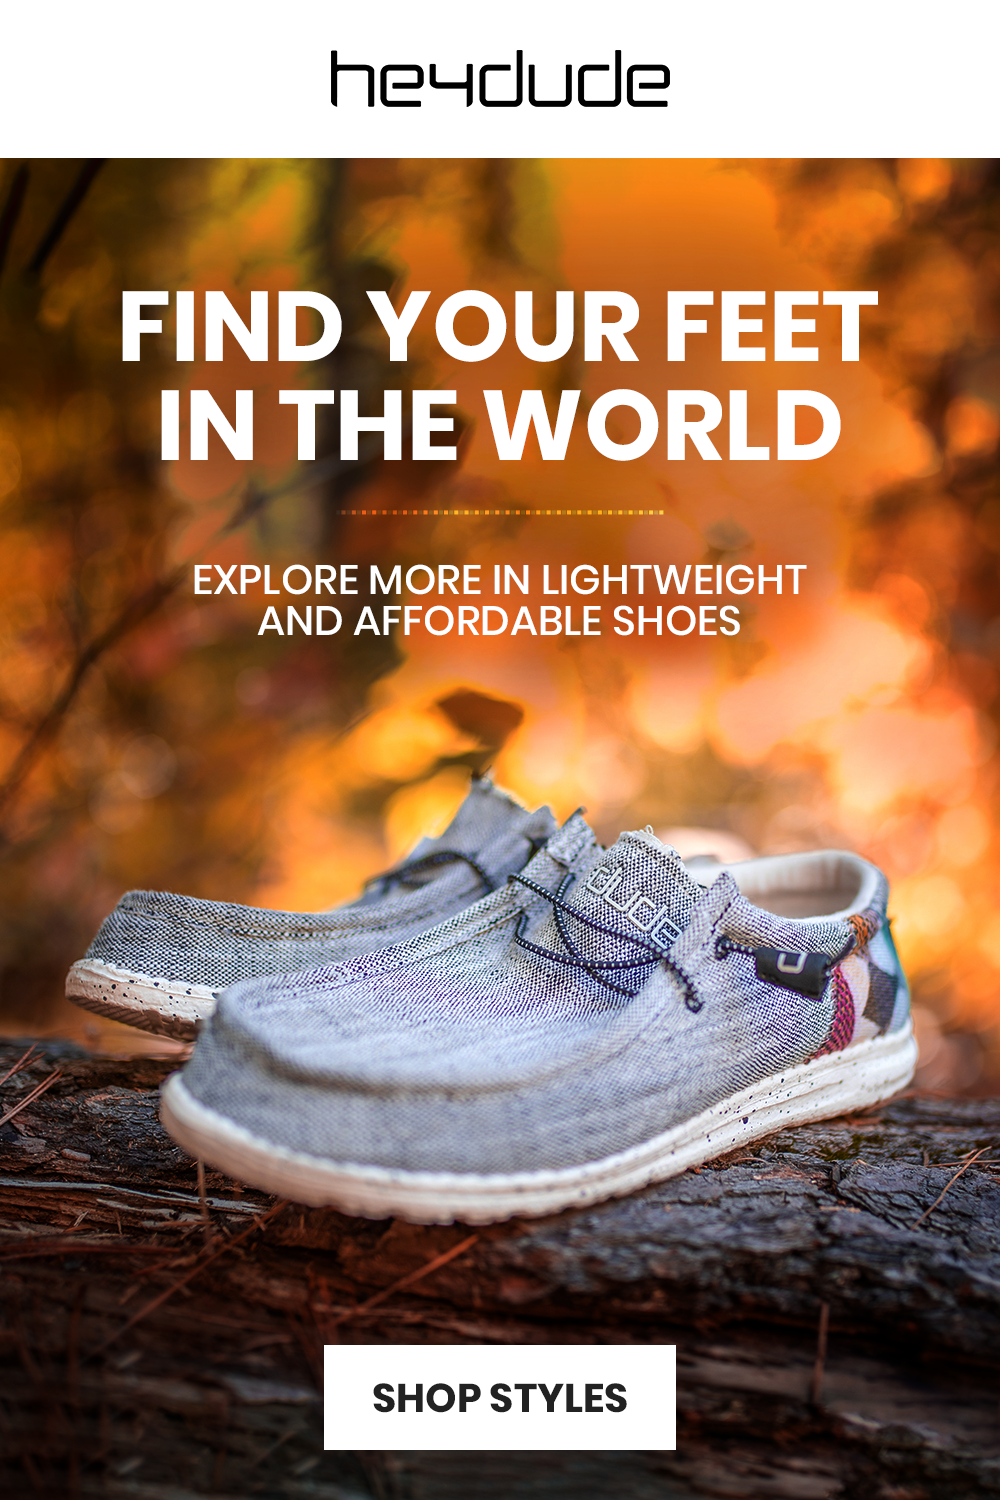 most lightweight shoes